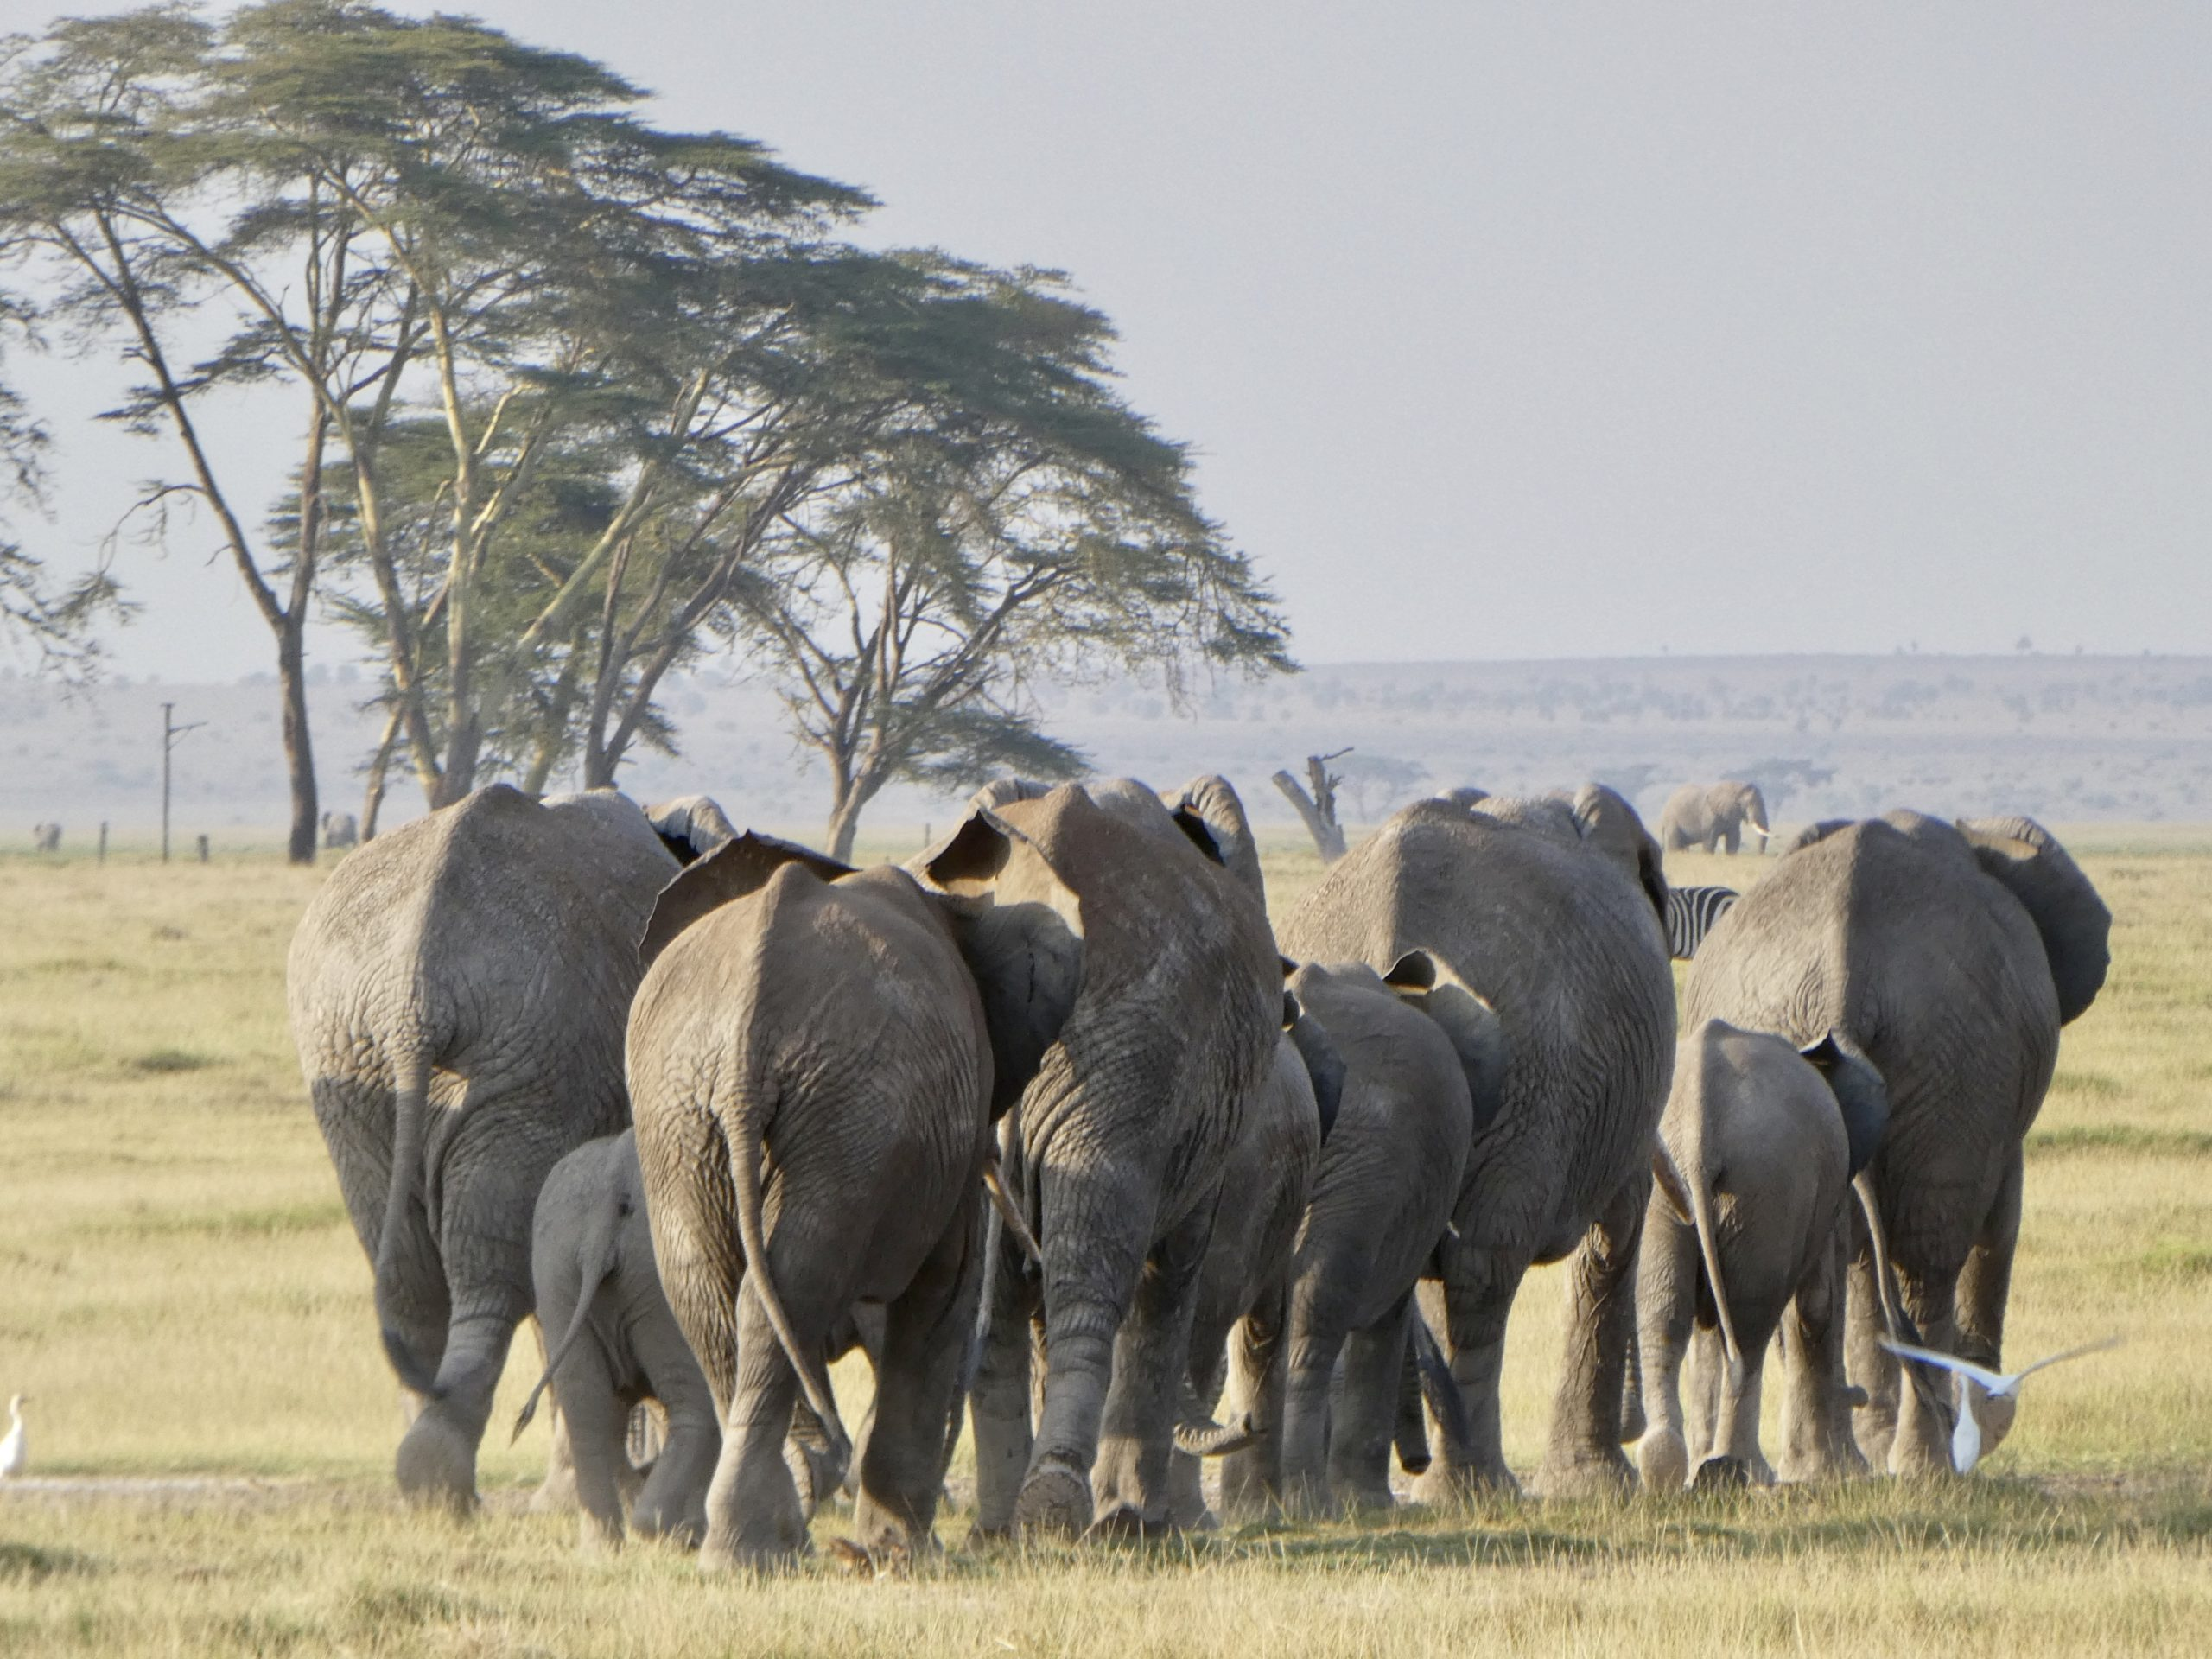 Elephants in Amboseli Kenya